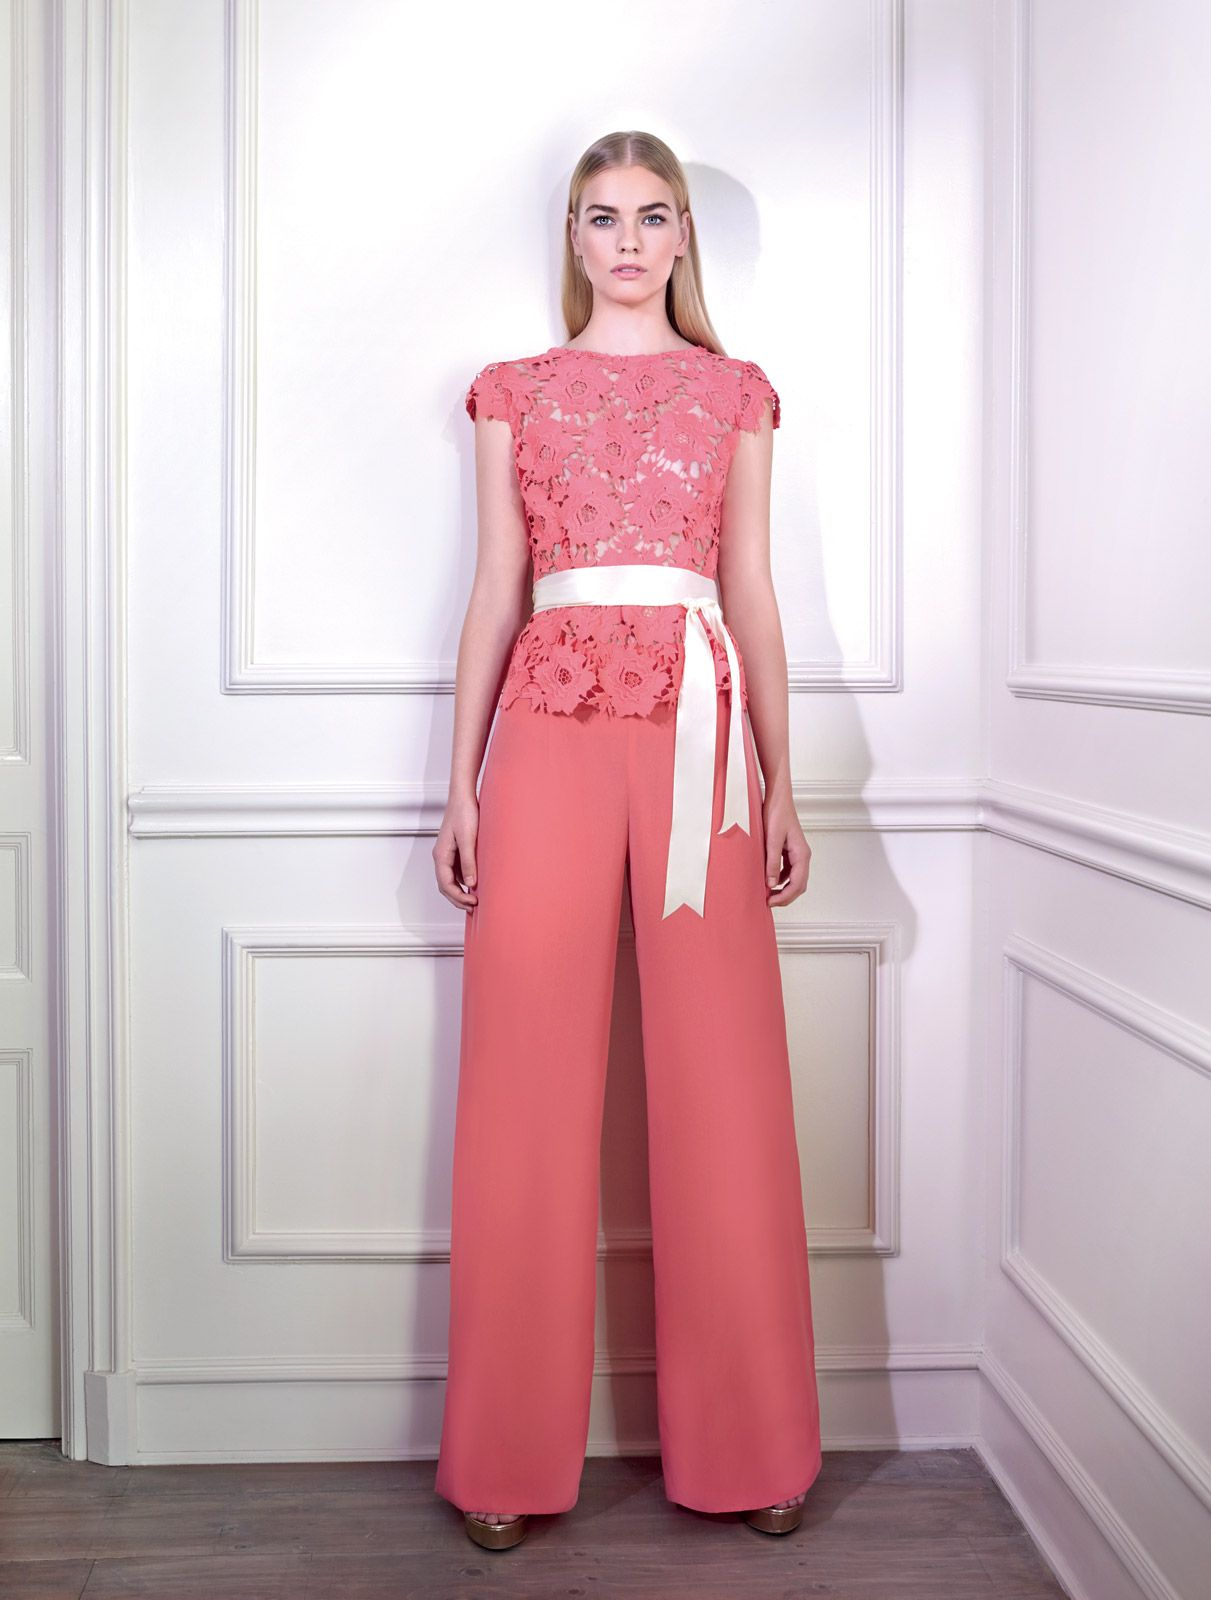 Vestidos de fiesta Mass Matilde Cano Look Book 2015. #Moda #Fashion ...